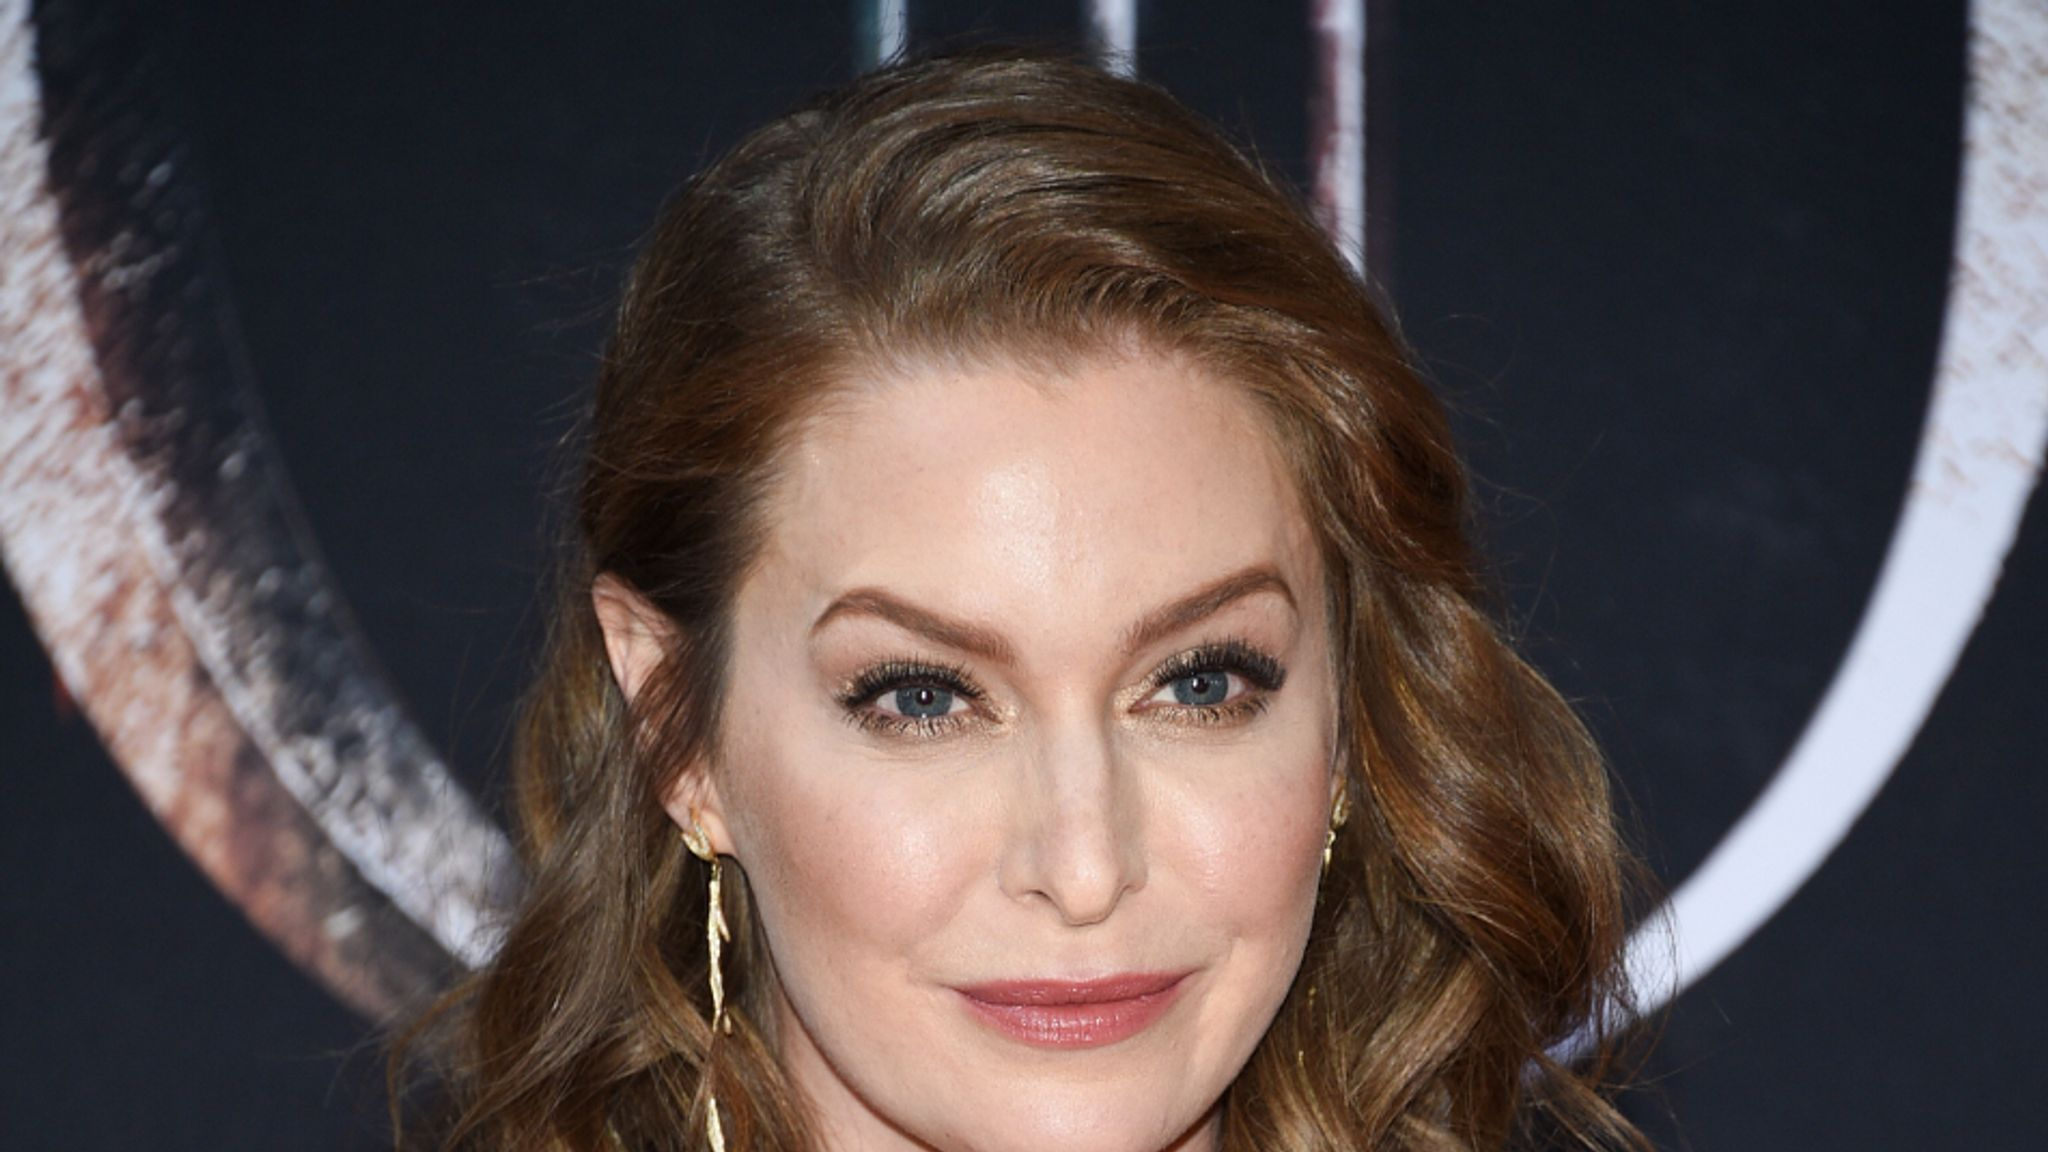 """Actress Esmé Bianco attends HBO's """"Game of Thrones"""" final season premiere at Radio City Music Hall on Wednesday, April 3, 2019, in New York. (Photo by Evan Agostini/Invision/AP)"""